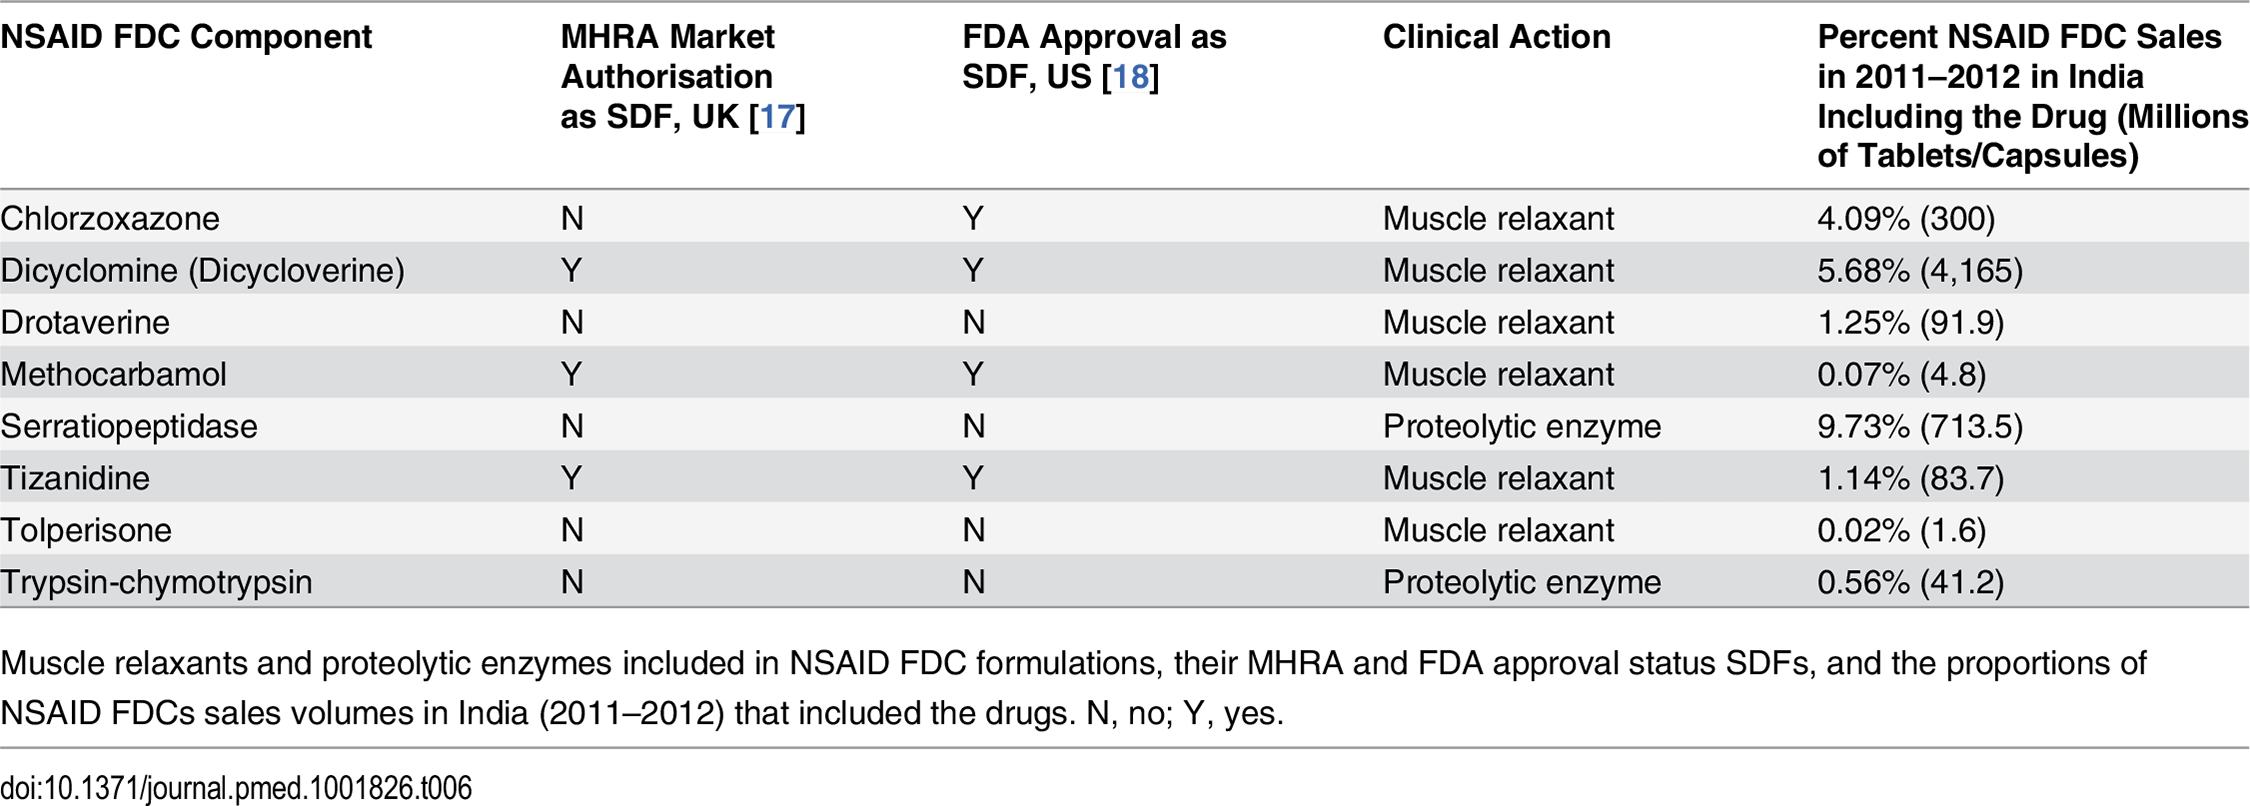 Muscle relaxants and proteolytic enzymes included in NSAID FDC formulations marketed in India.